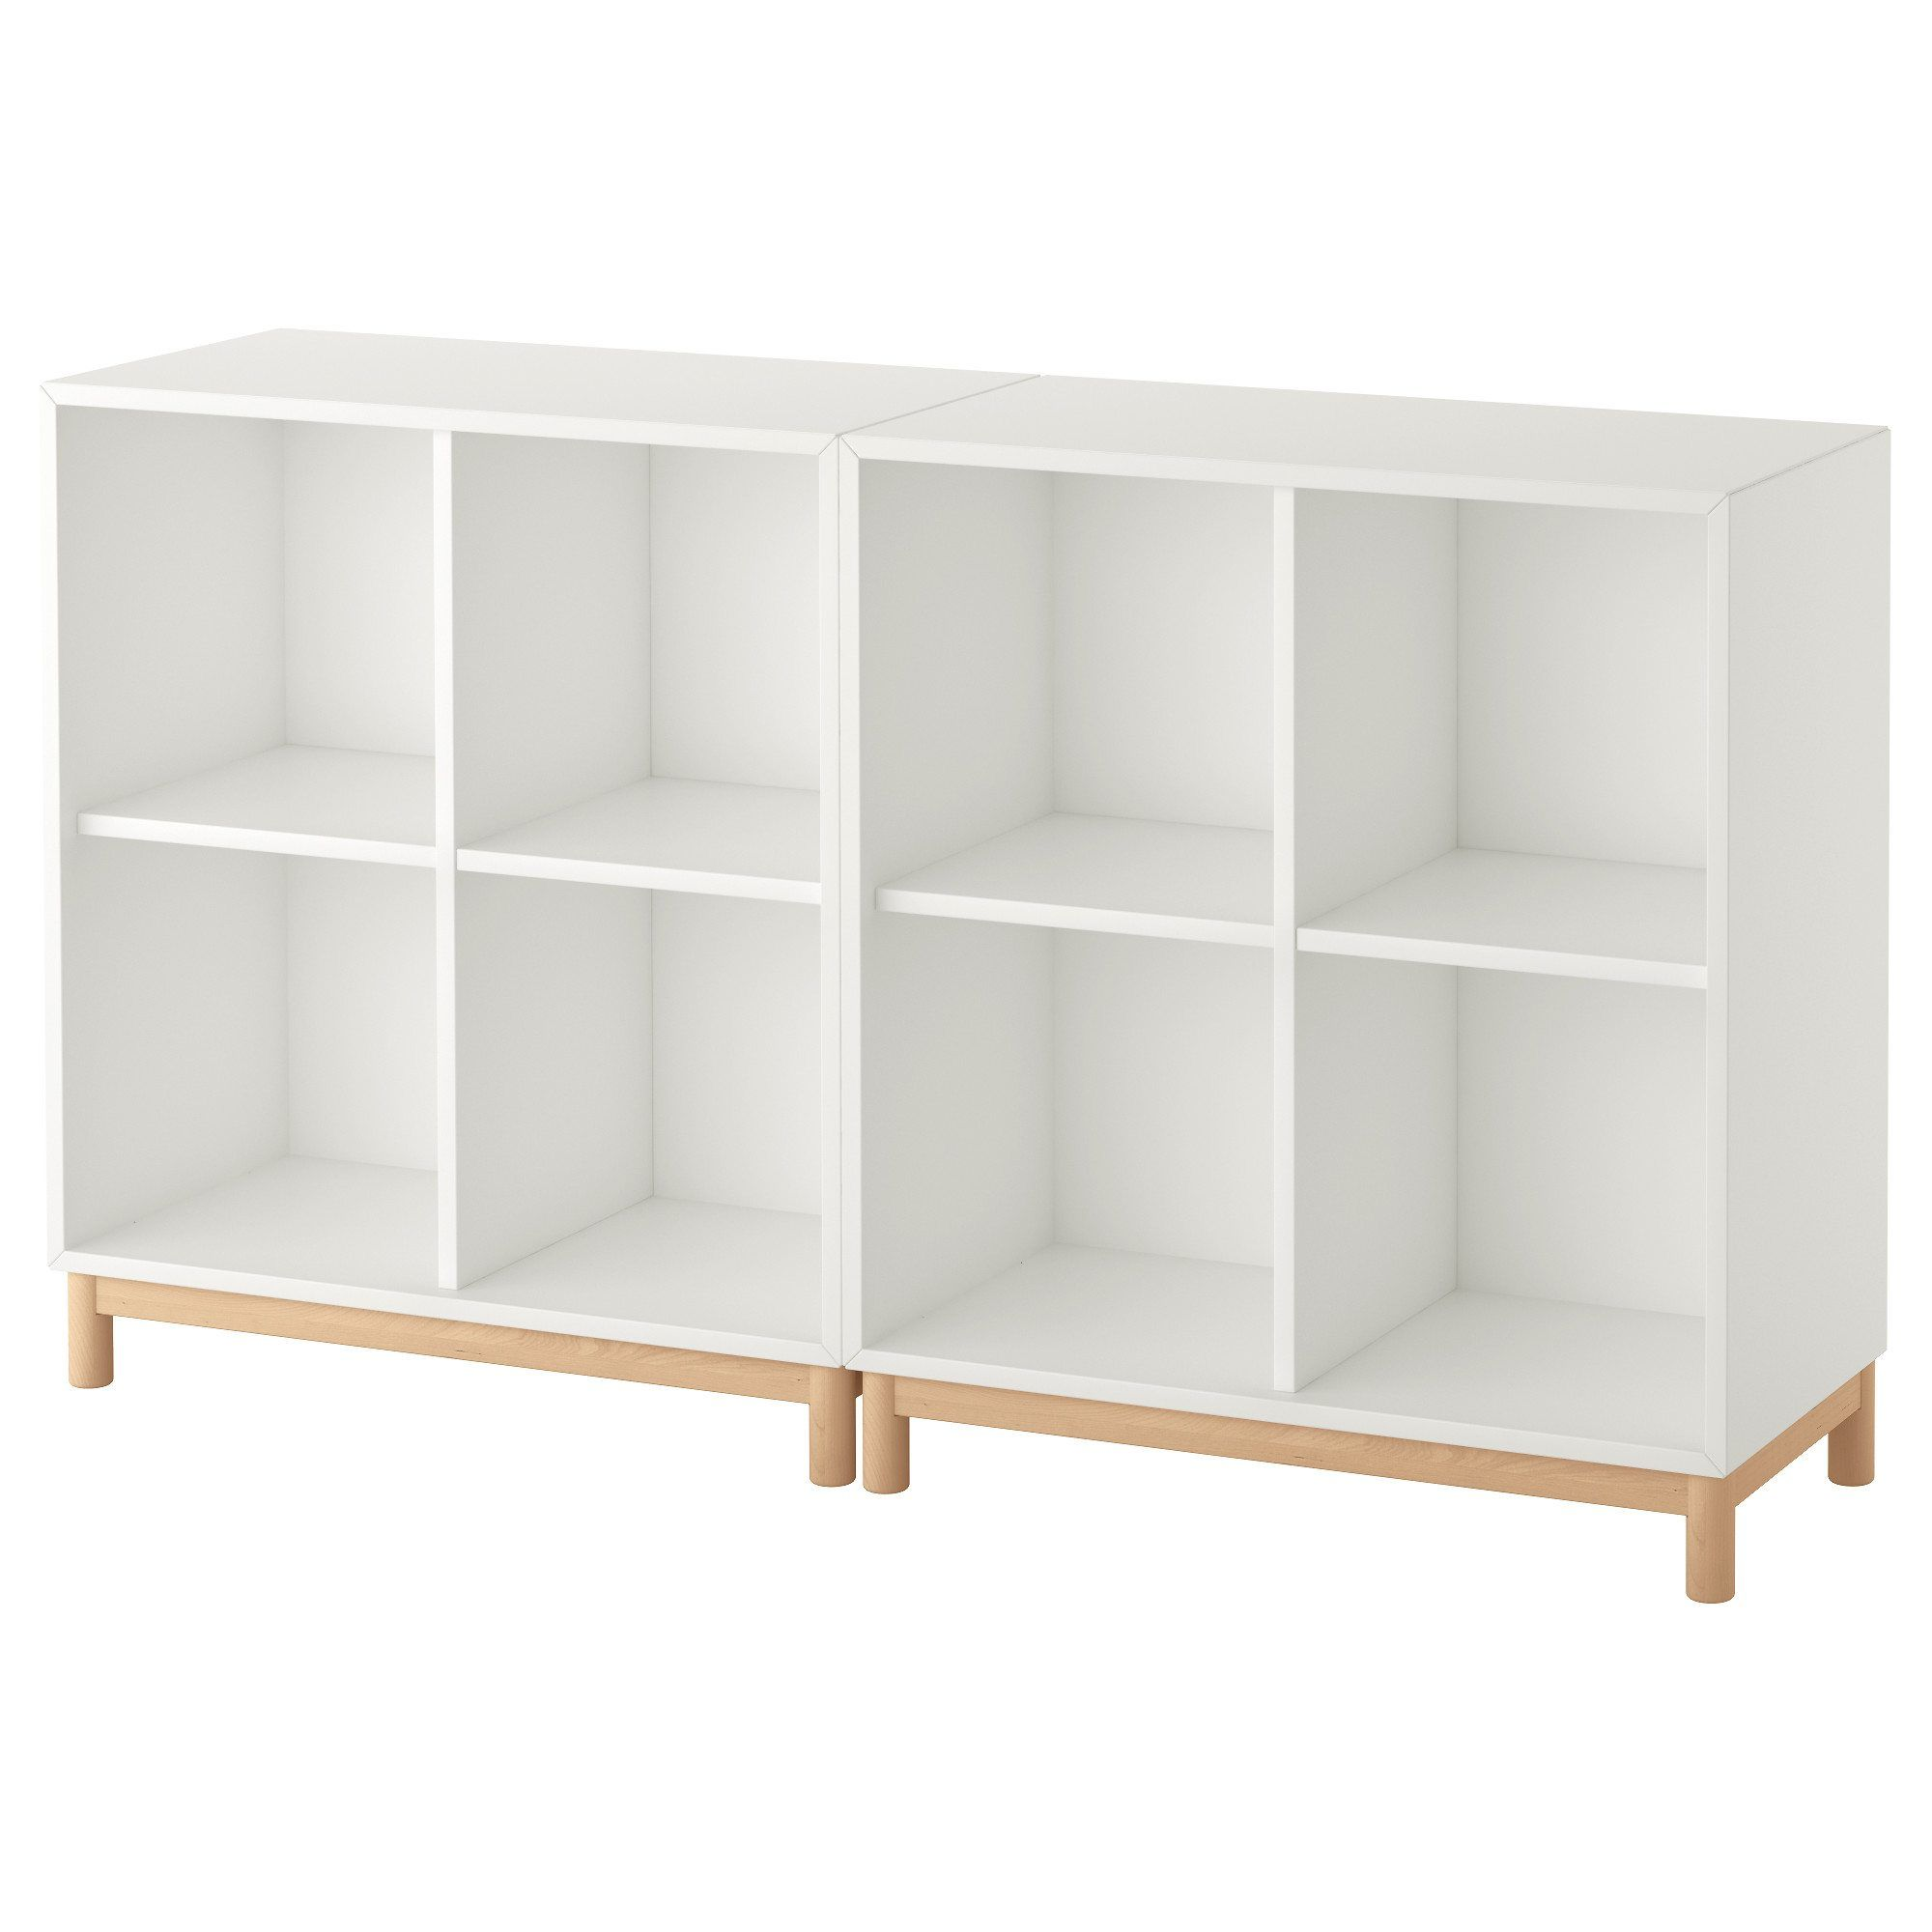 New Ikea Eket Shelves New Vinyl Storage Option Djworx